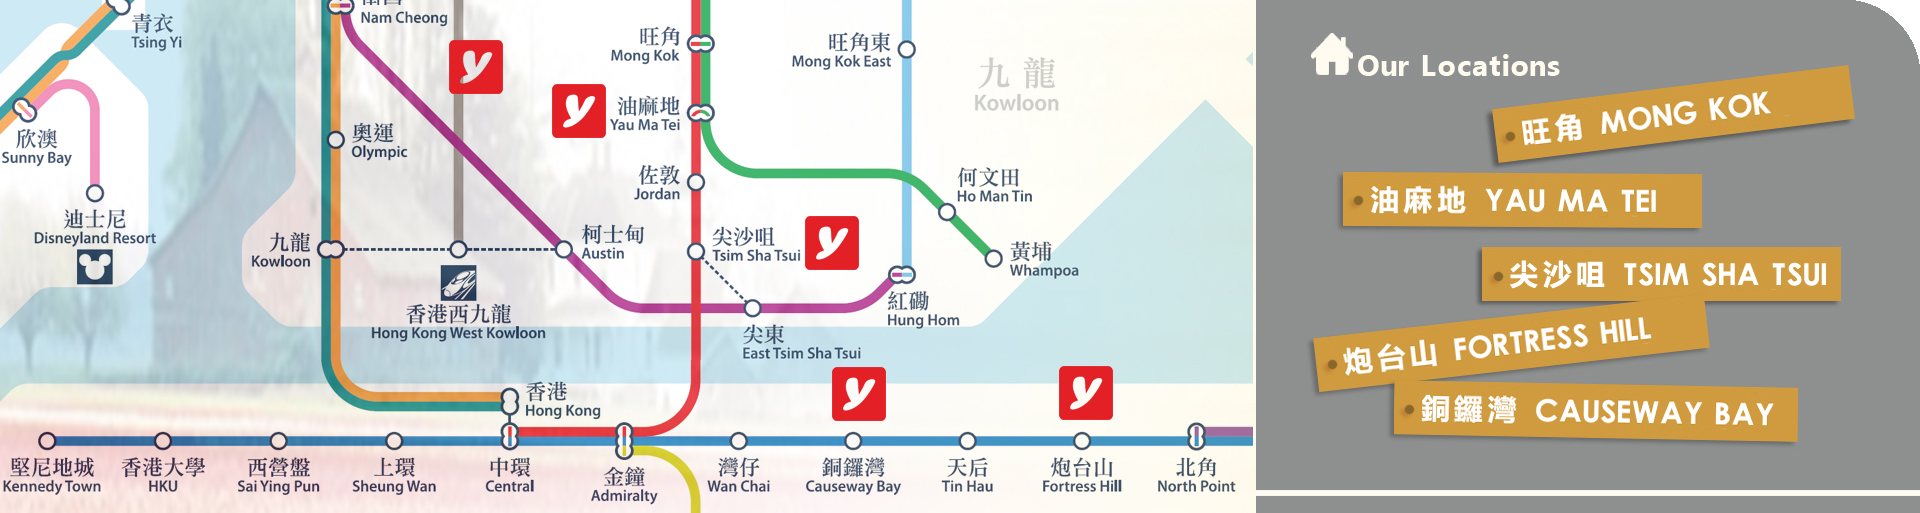 hk_serviced_apartment_location_yesinspace